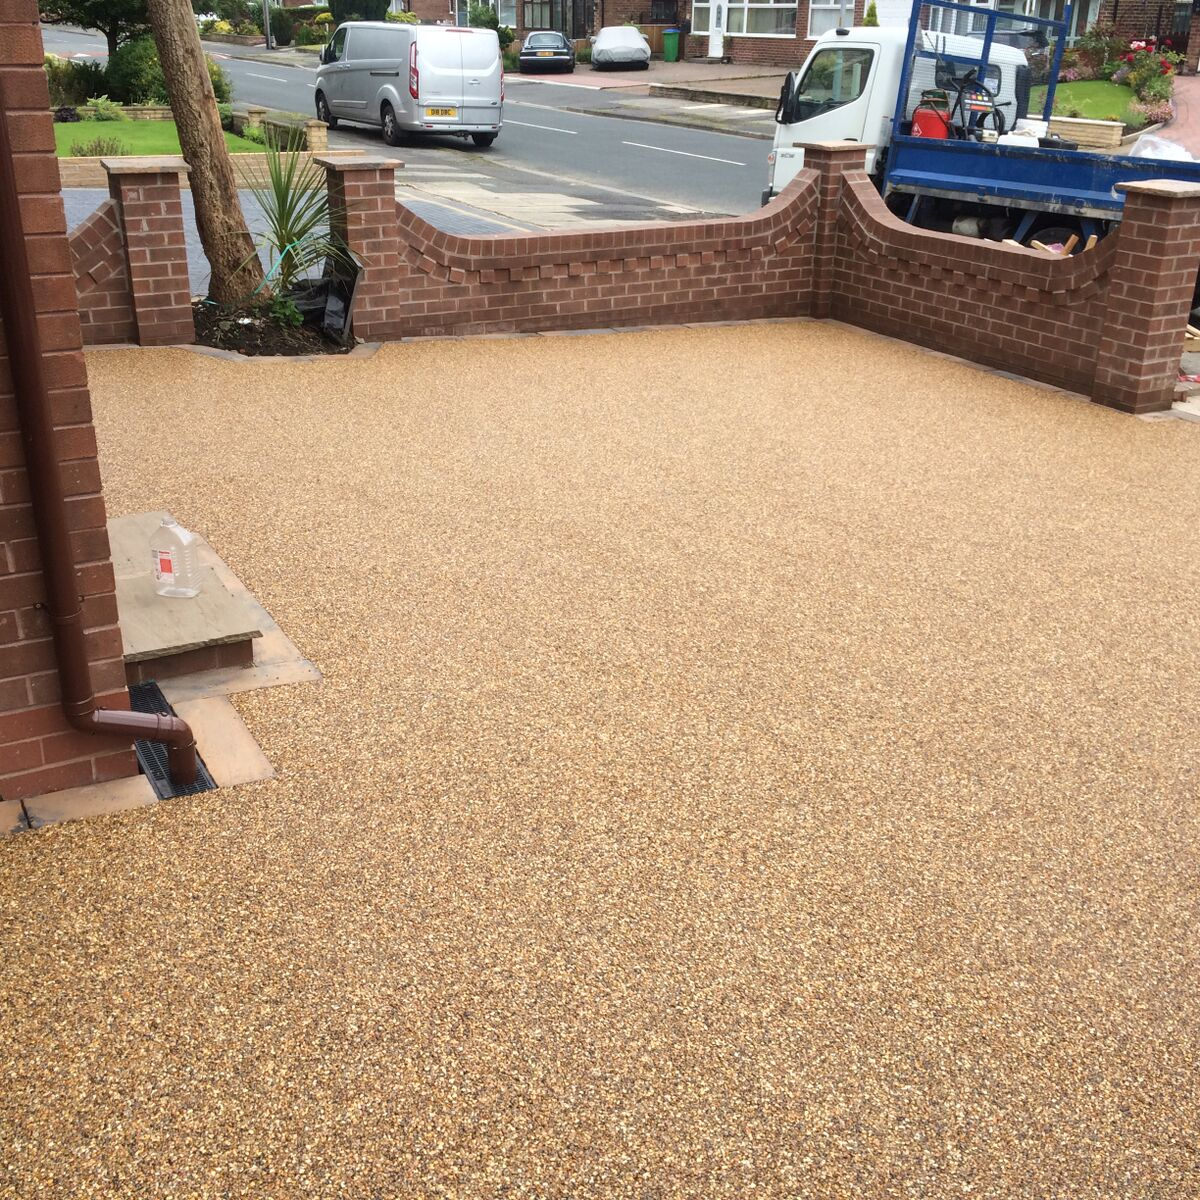 Image shows work completed by Copek Resin Bound and Aggregates and Surfacing on a resin driveway in Bristol